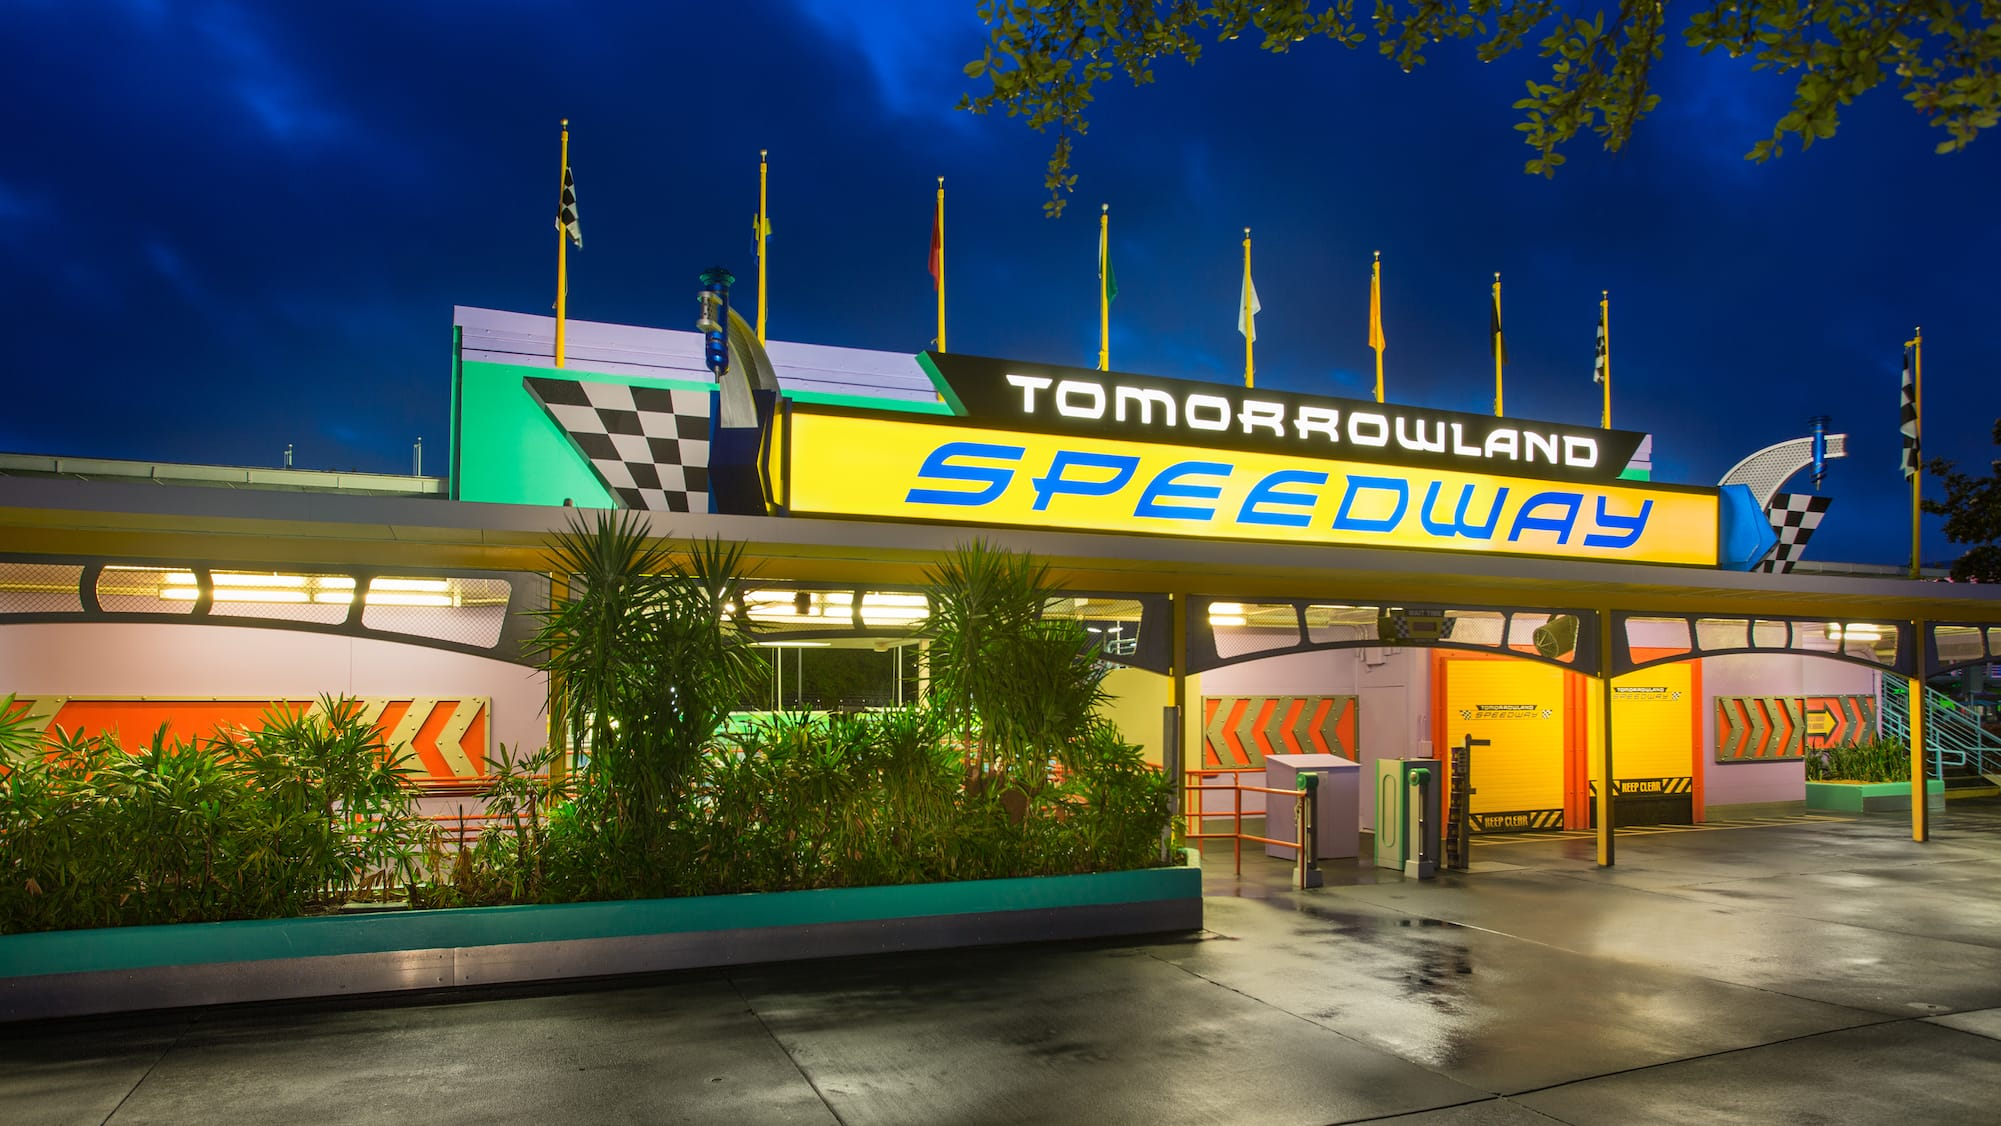 Tomorrowland Speedway | Magic Kingdom Attractions